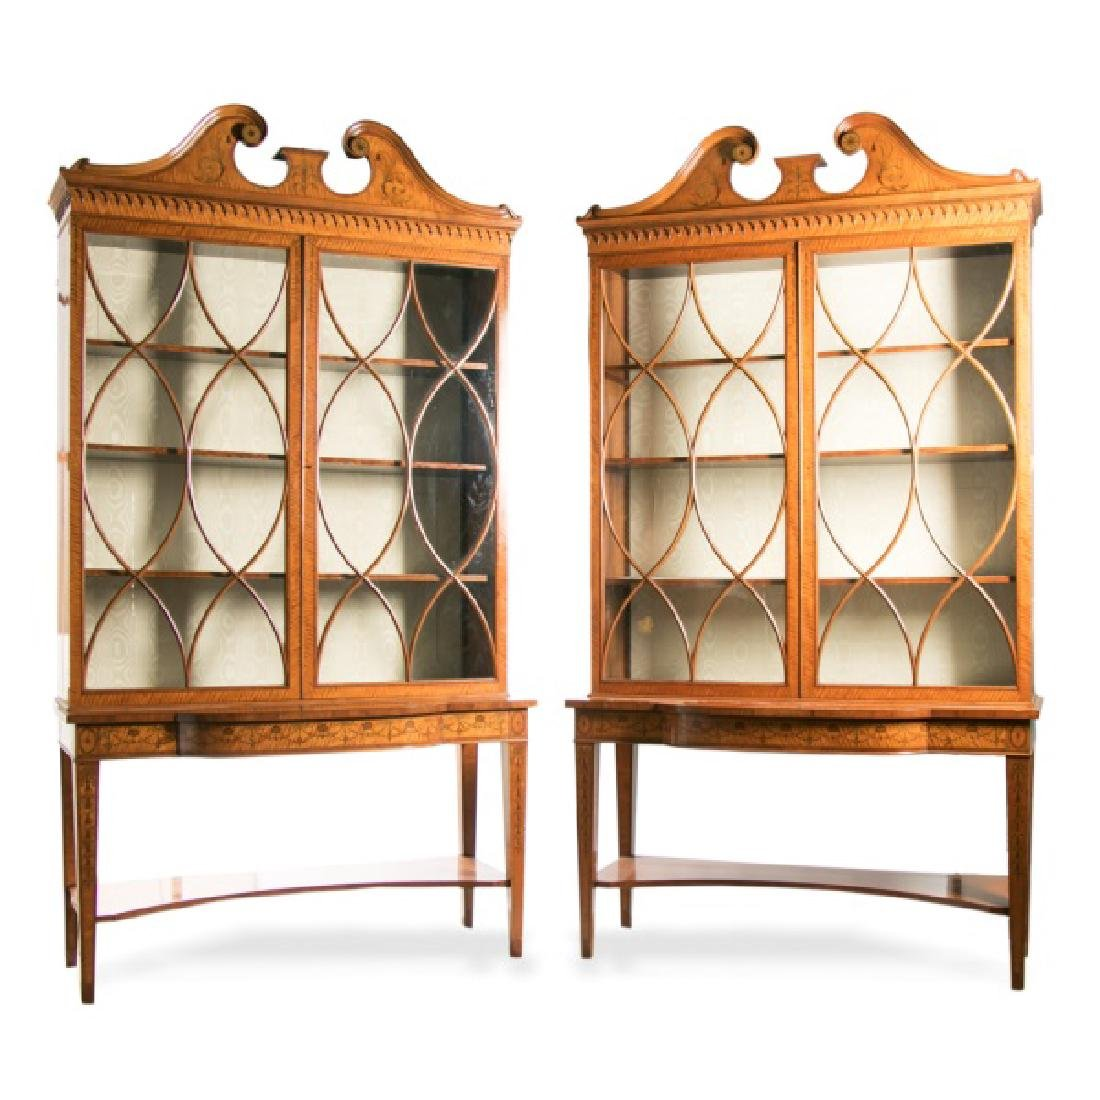 Pair of Sheraton Revival Satinwood Cabinets